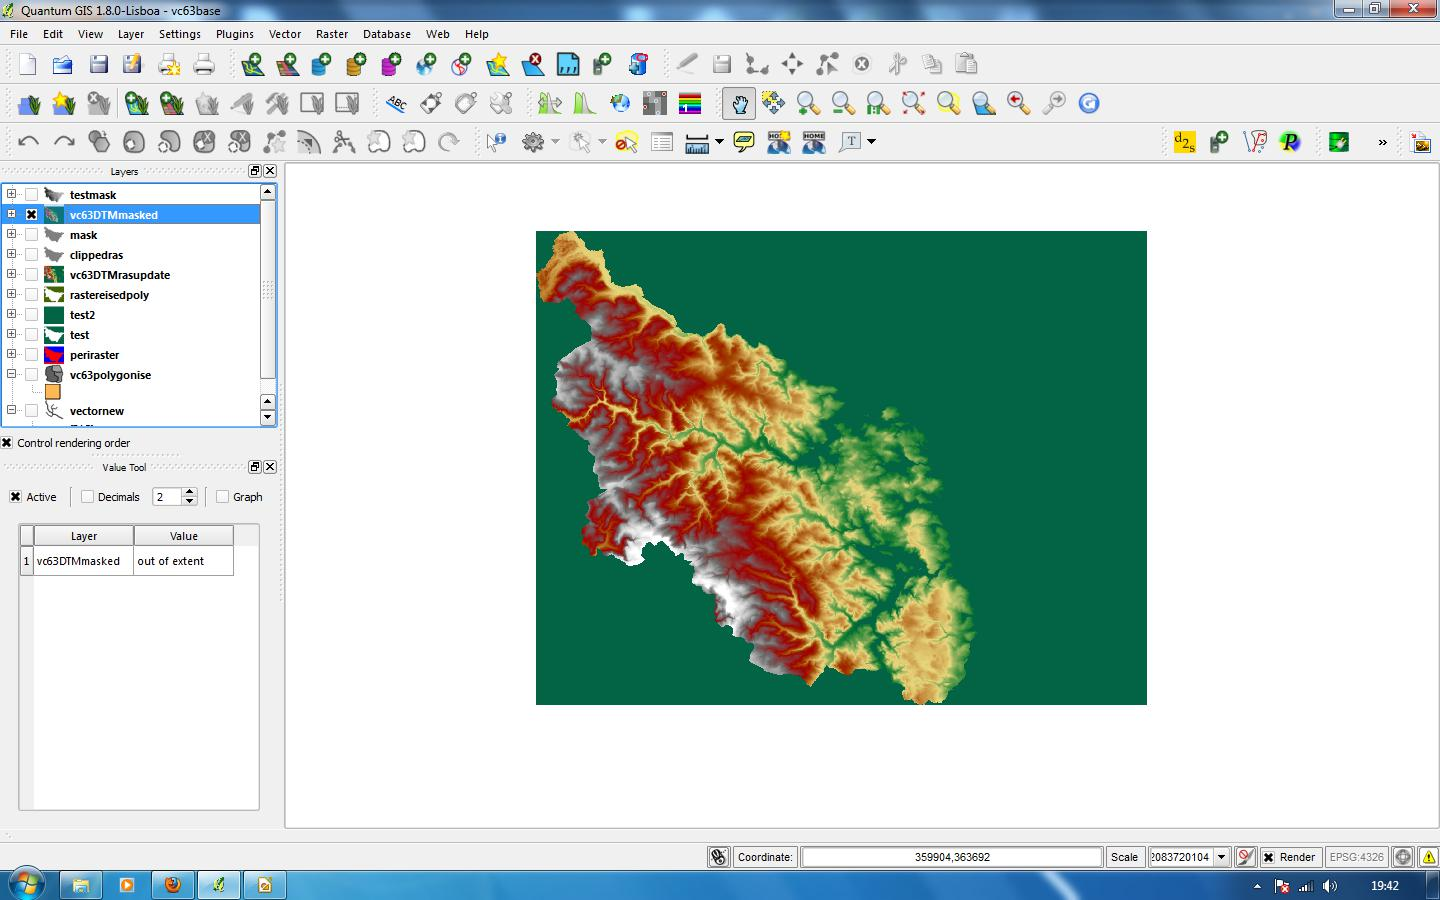 sacrevert: Creating masked vice-county rasters in Quantum GIS